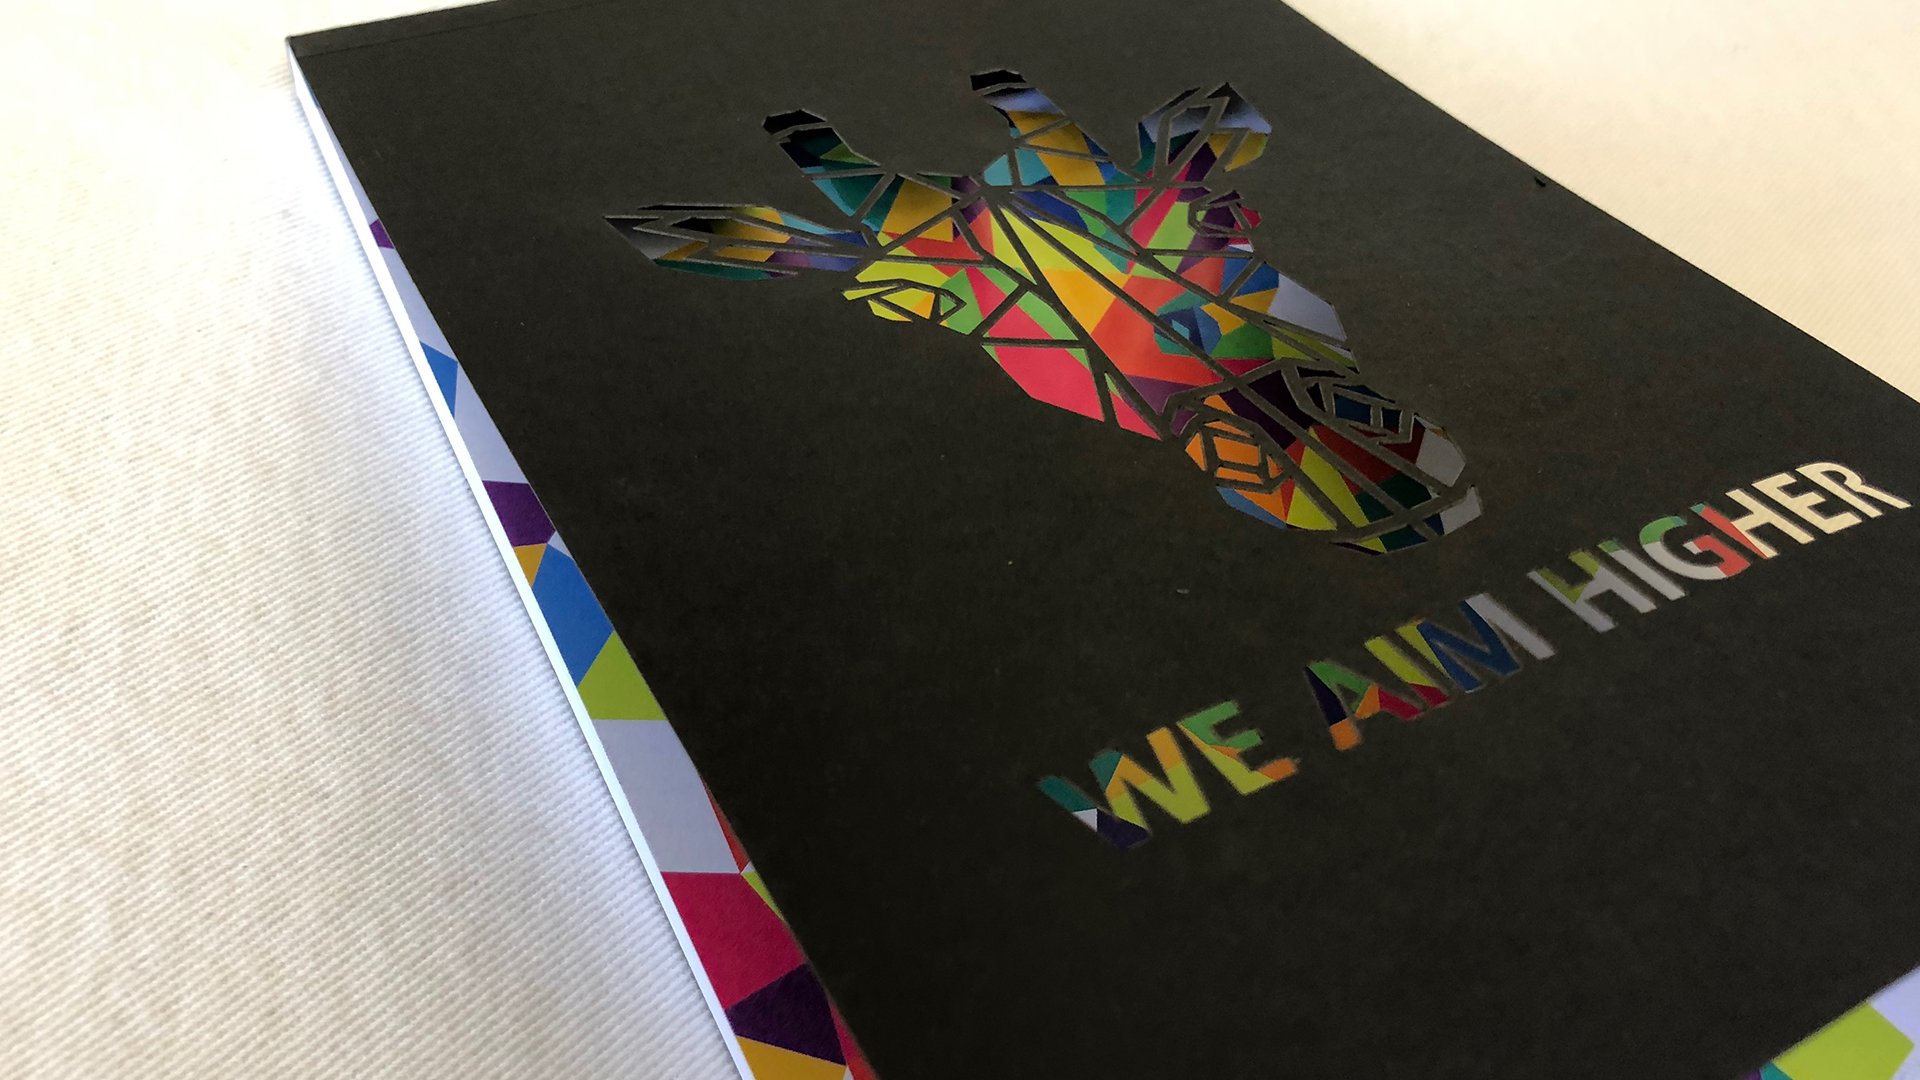 Vibrant 'We Aim Higher' Notebook - PaperSpecs